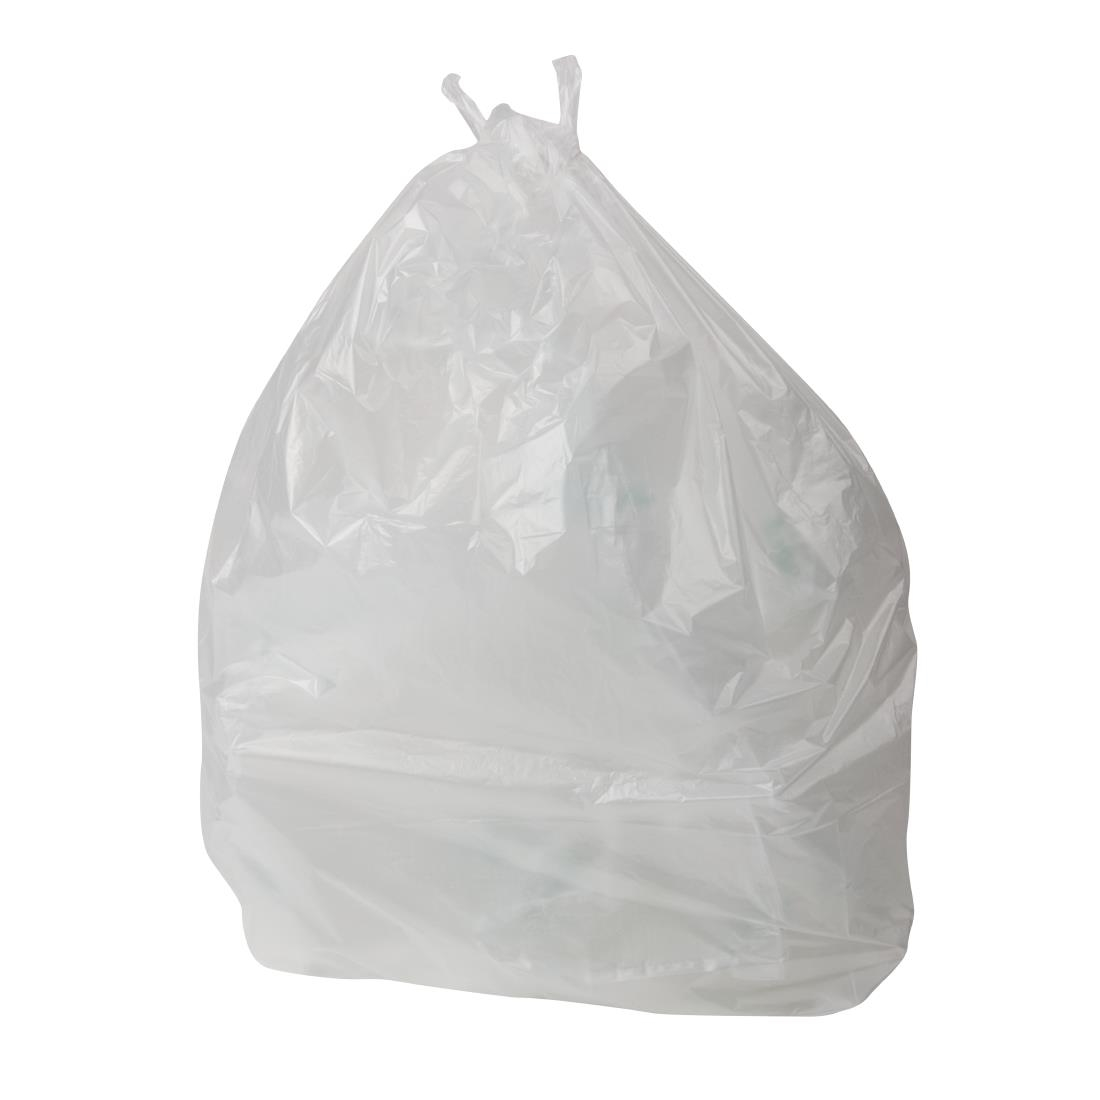 Image of Jantex Large Light Duty Clear Bin Bags 90Ltr (Pack of 200) Pack of 200